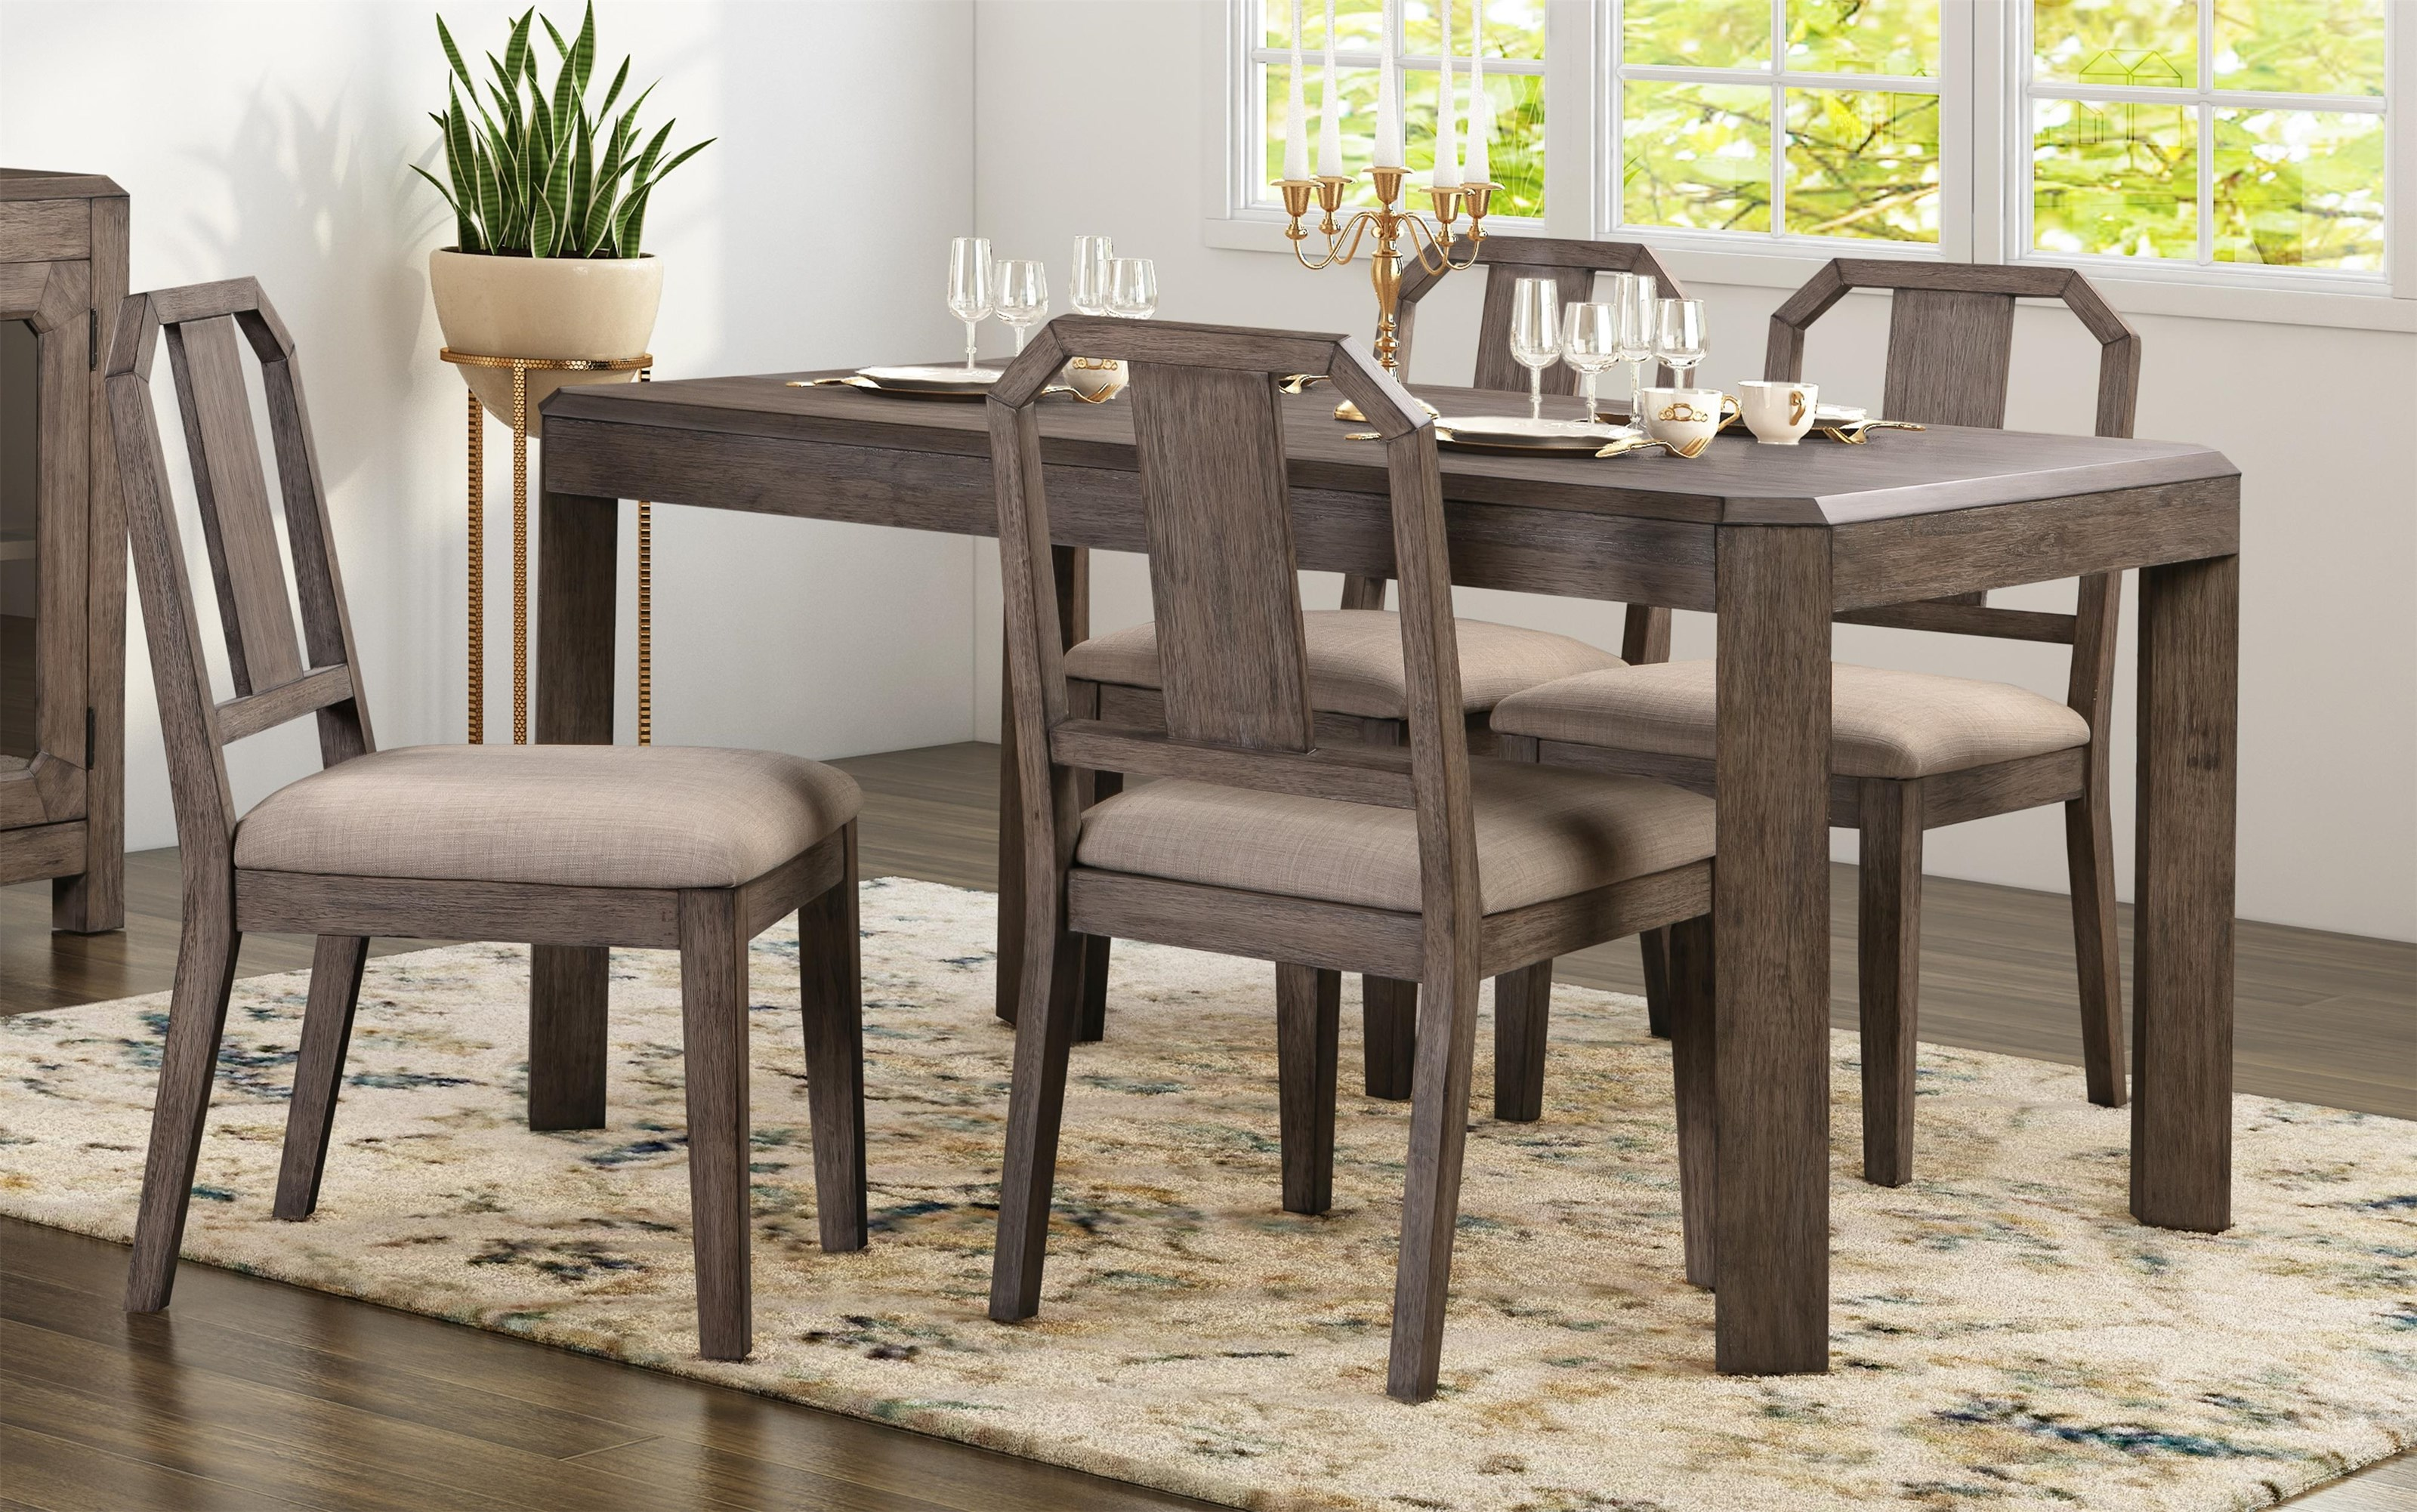 Anchorage Anchorage 5-Piece Dining Set by Modus International at Morris Home